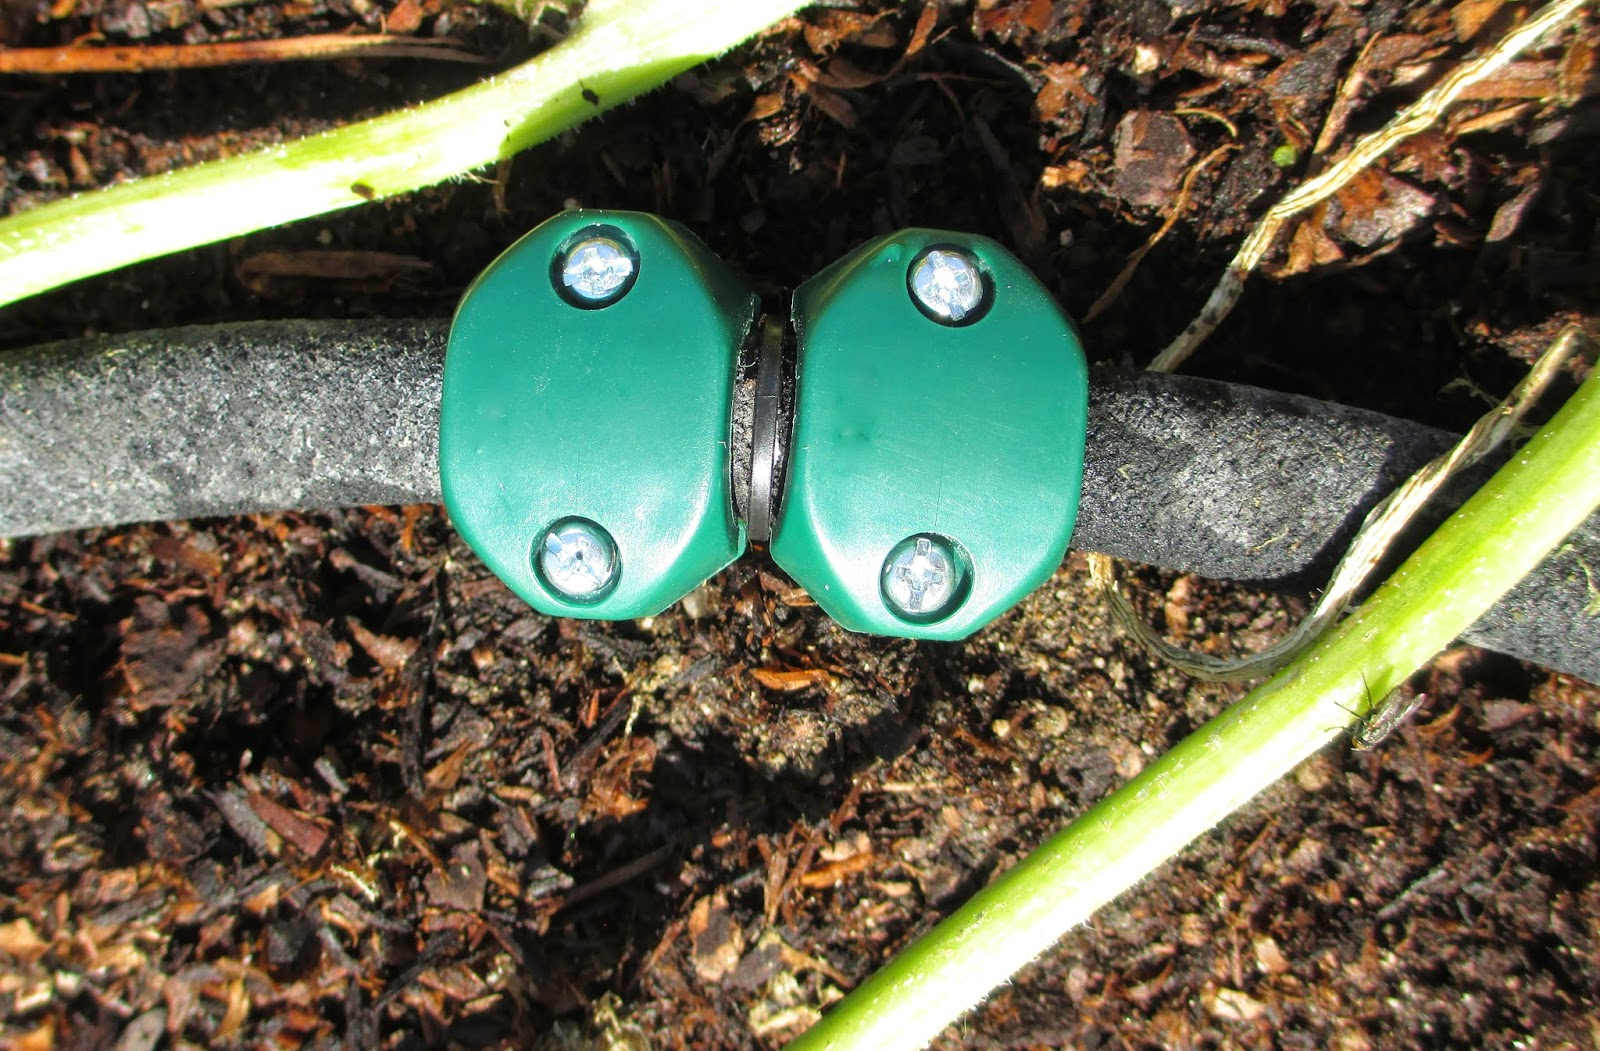 Andie 39 S Way How To Repair A Hose Leak Tips For Beginners